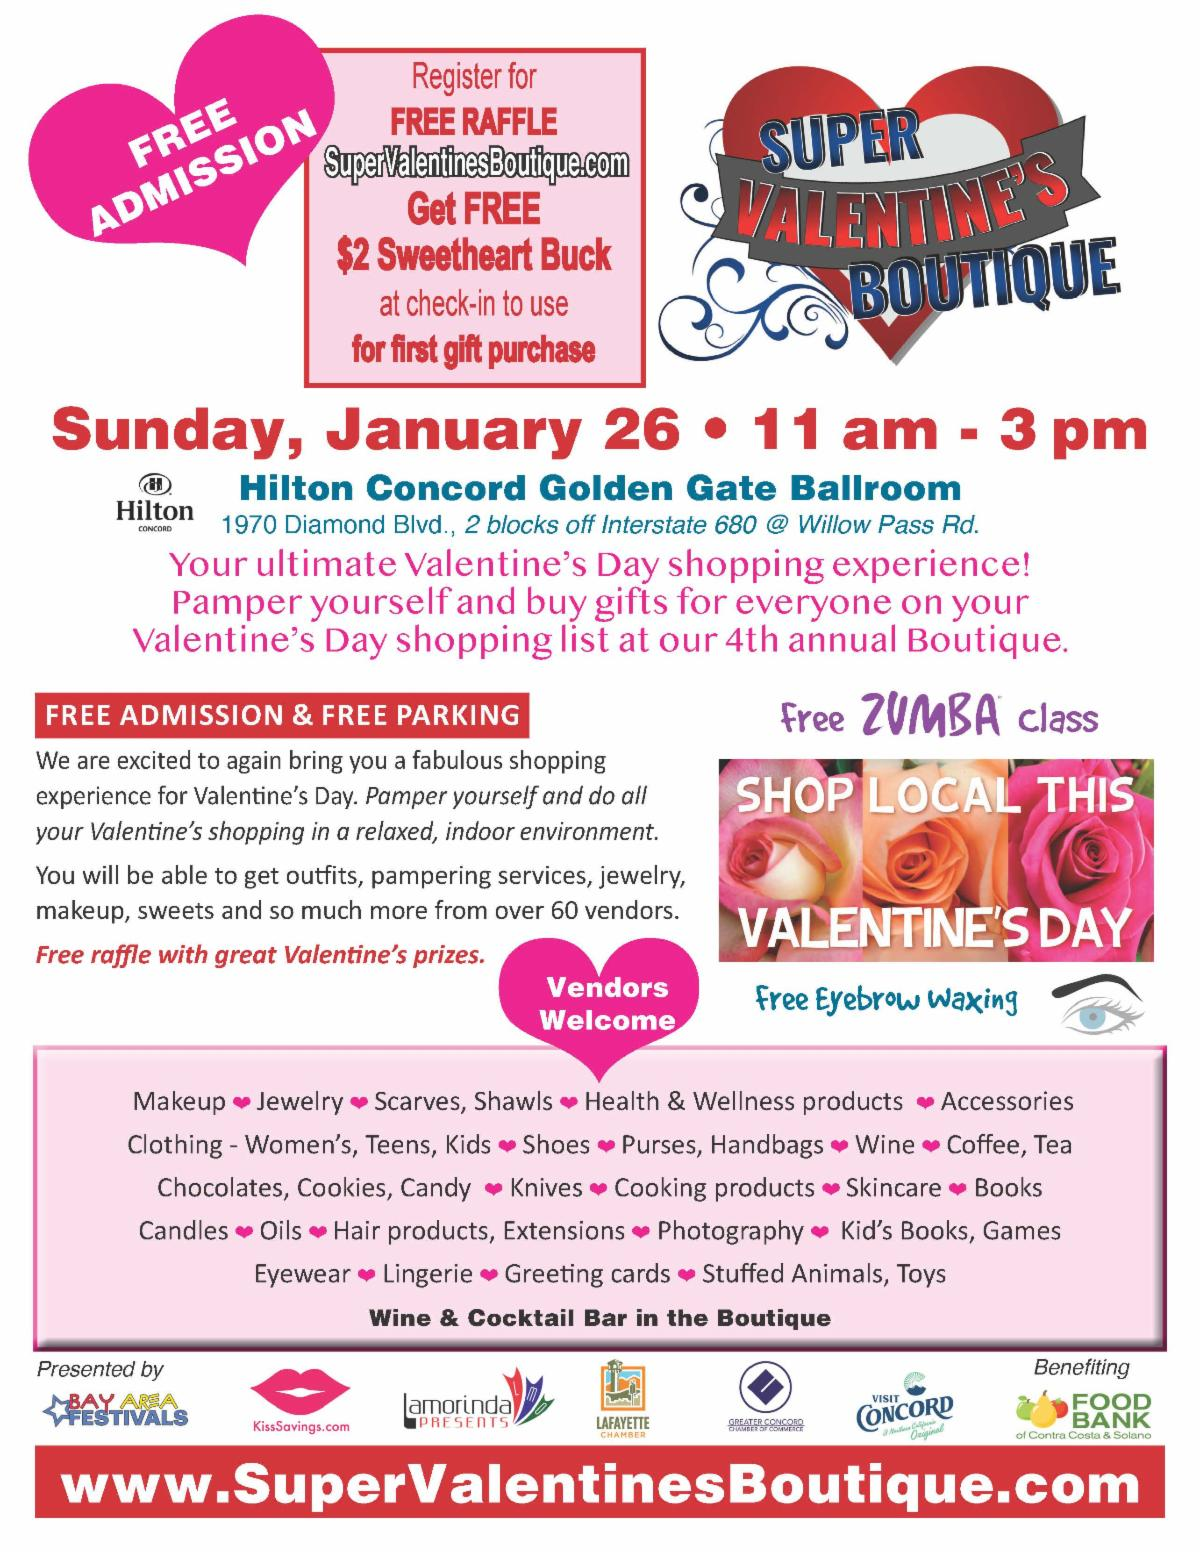 Super Valentine's Day Boutique